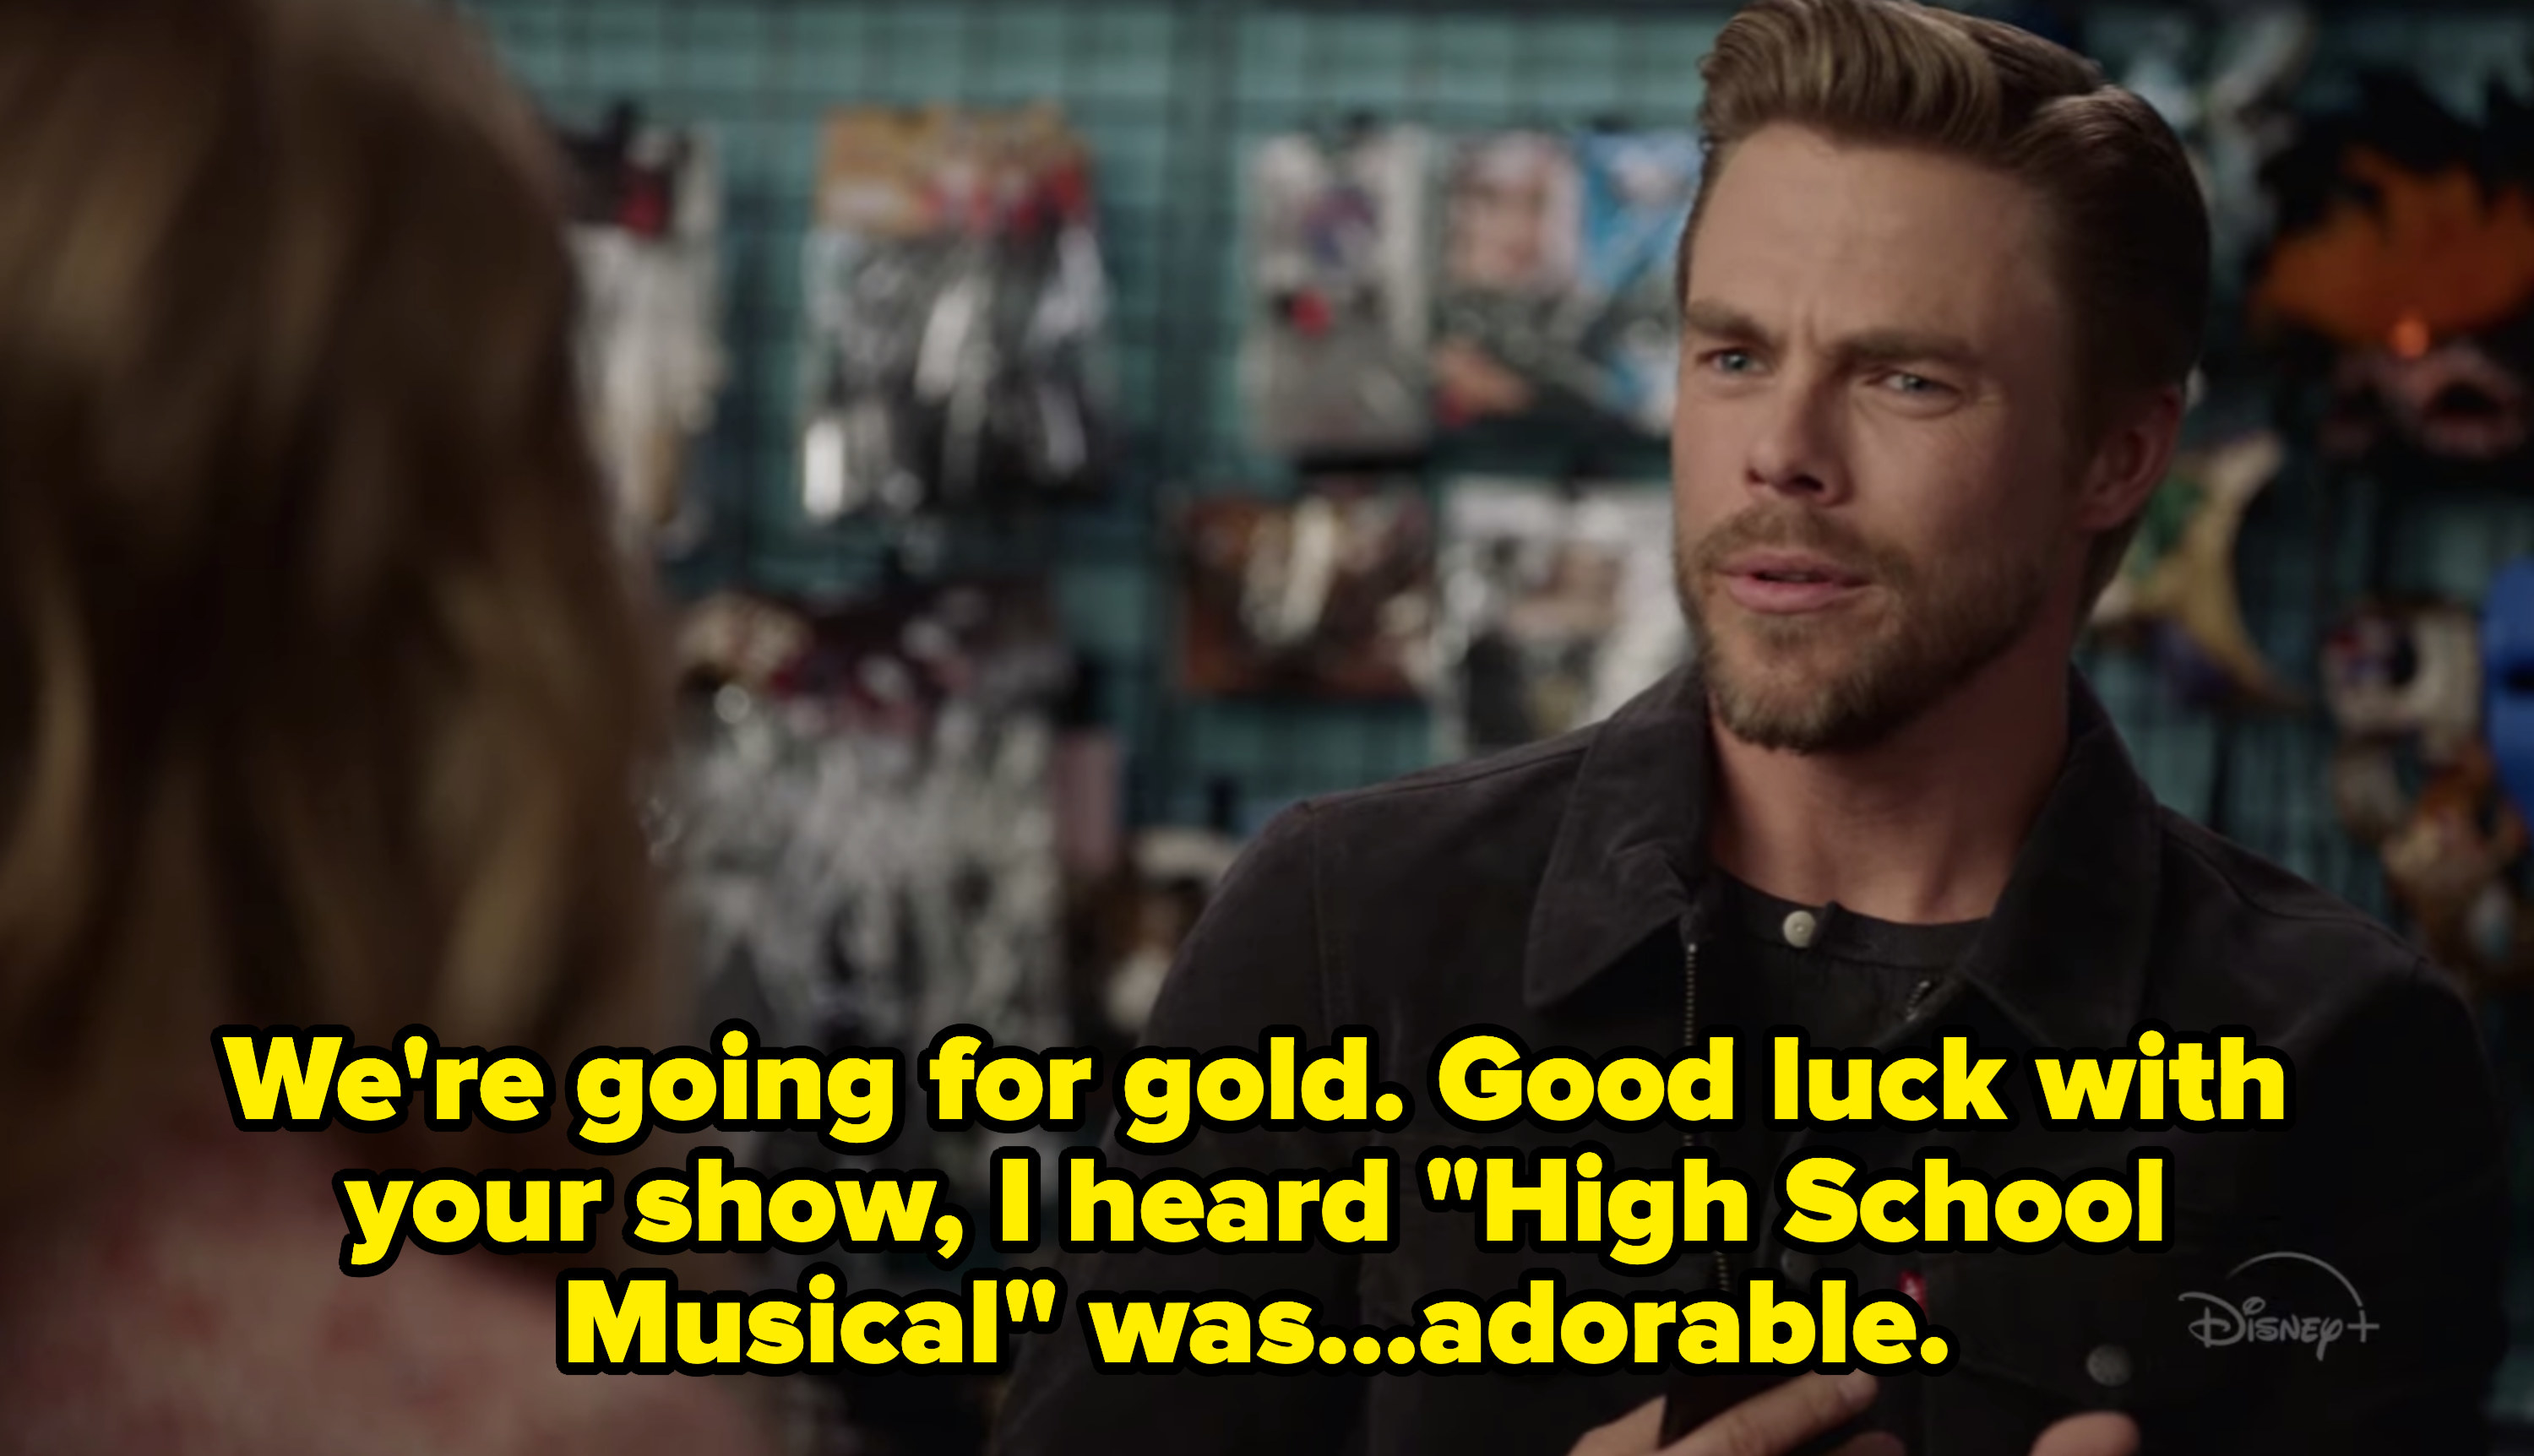 """Derek saying, """"We're going for gold. Good luck with your show, I head """"High School Musical"""" was...adorable"""""""